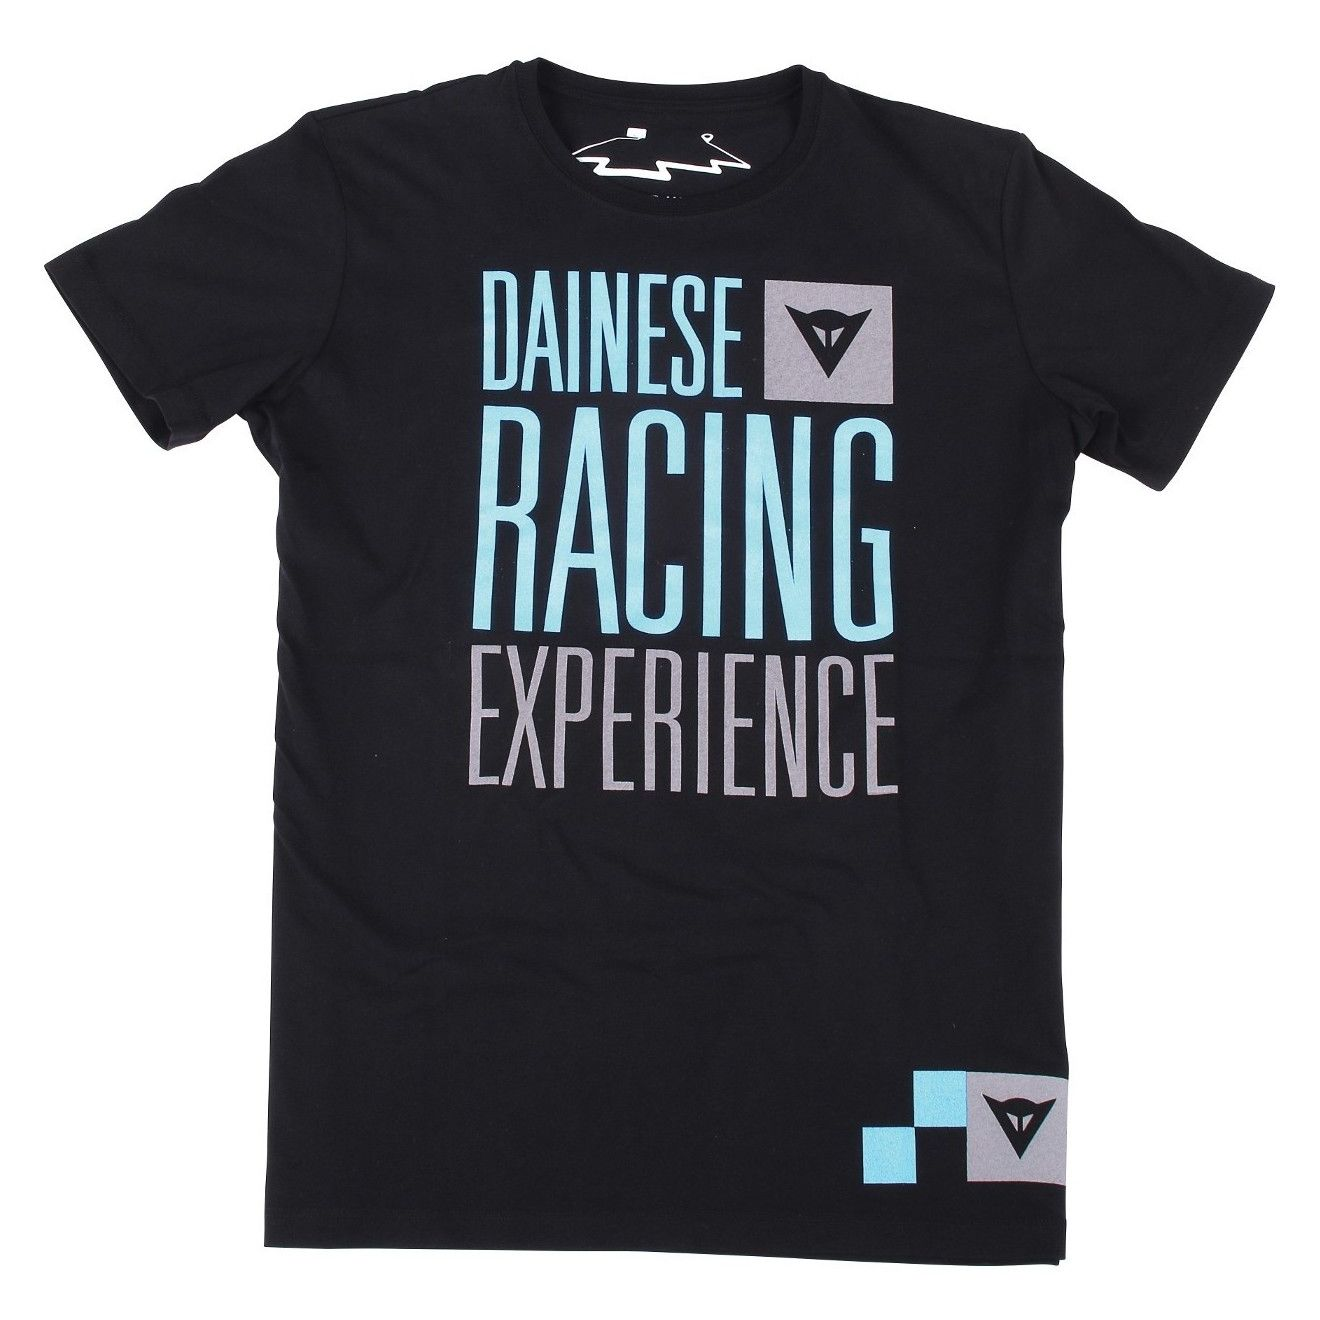 dainese racing experience t shirt revzilla. Black Bedroom Furniture Sets. Home Design Ideas